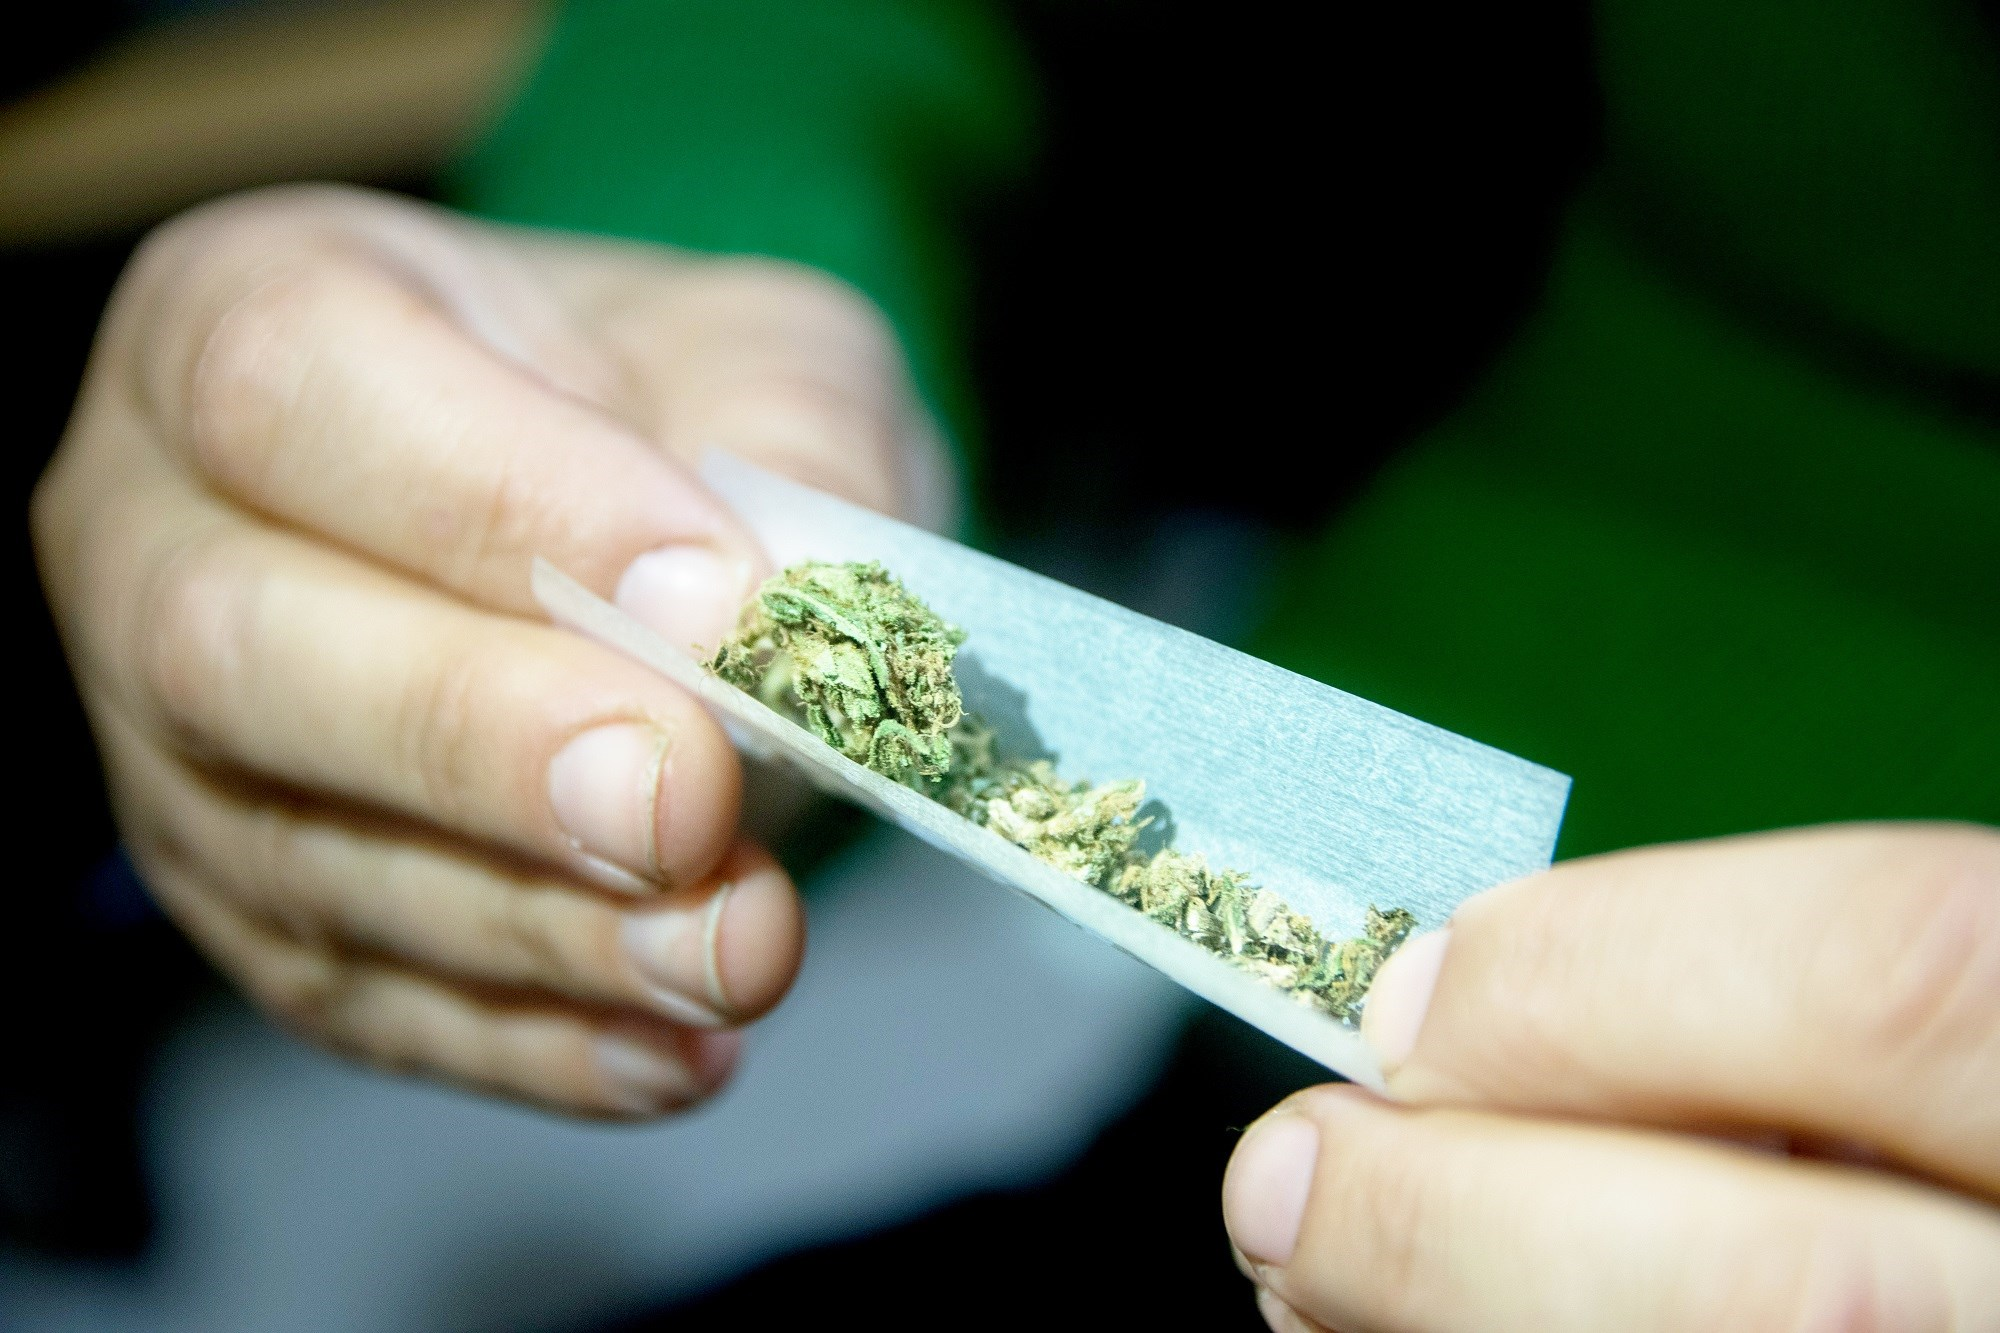 The prevalence of marijuana use was 20, 14.1, and 12 percent in states where recreational use is legal, medical use is legal, and no use is legal, respectively.